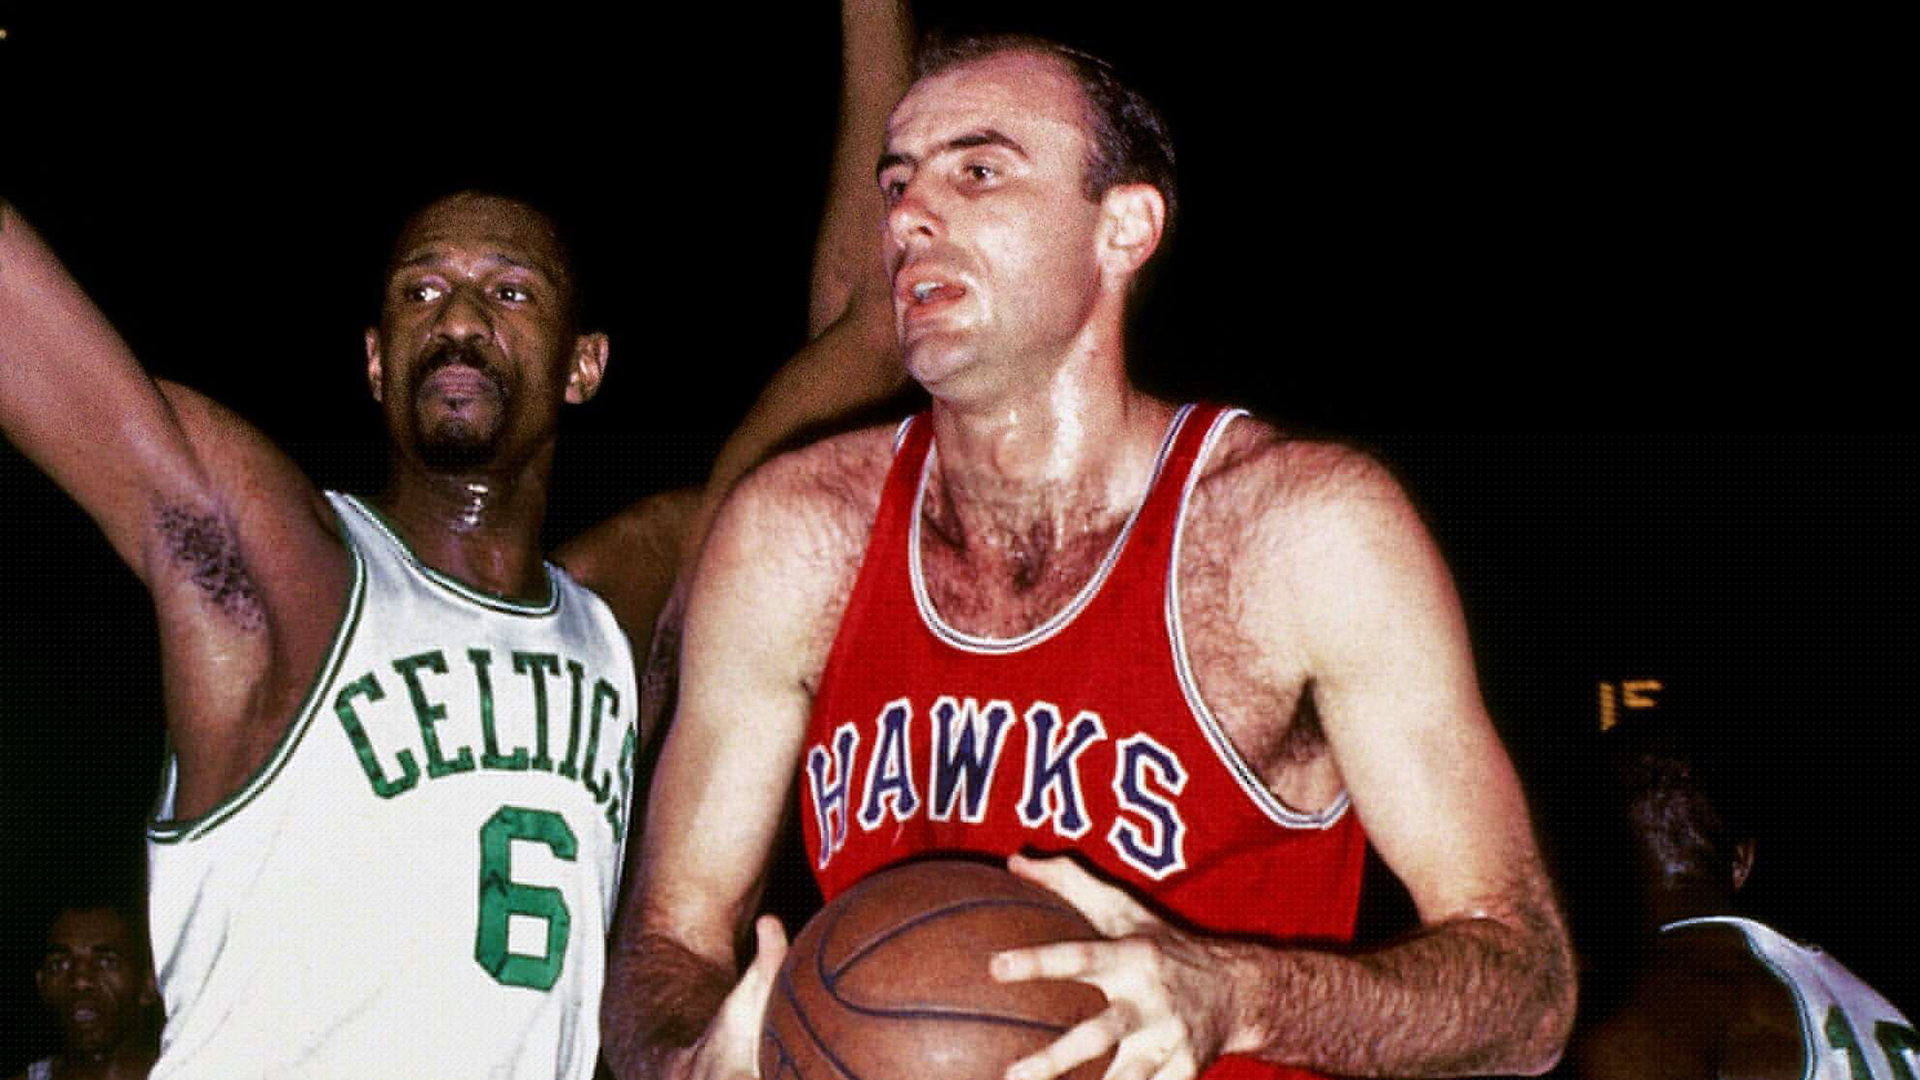 Top Moments: After years of letdowns, Bob Pettit has his revenge in 1958